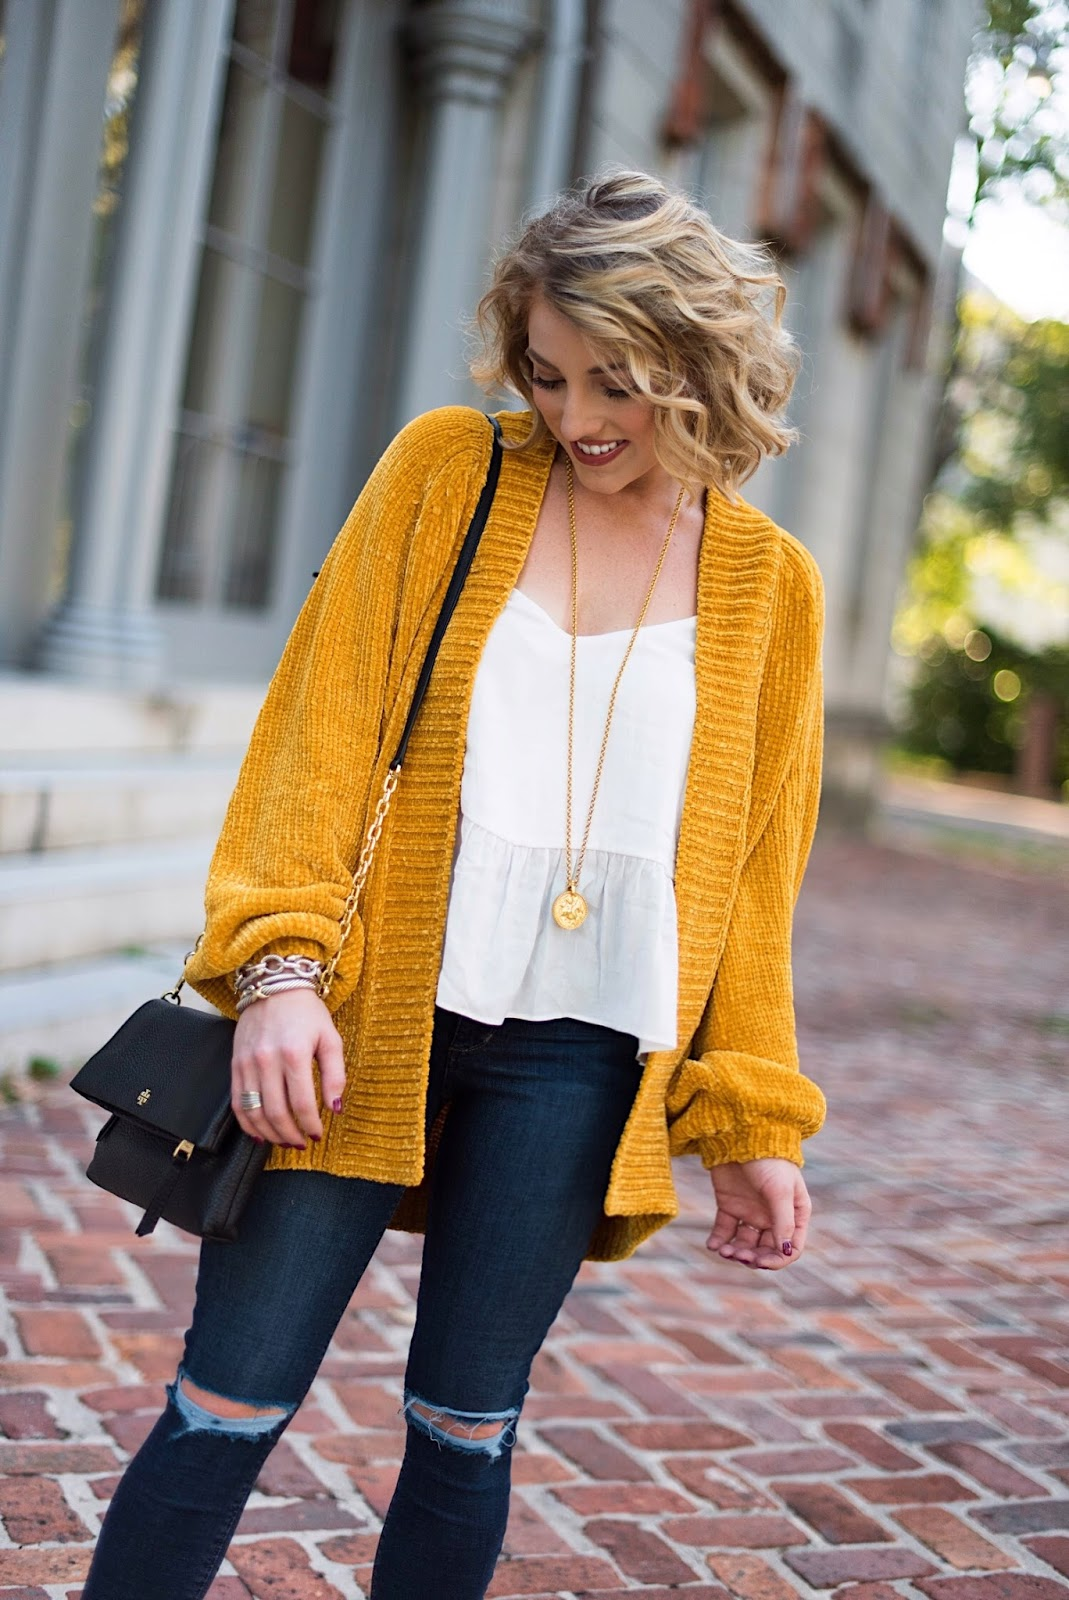 Chenille Cardigan for Fall - Something Delightful Blog